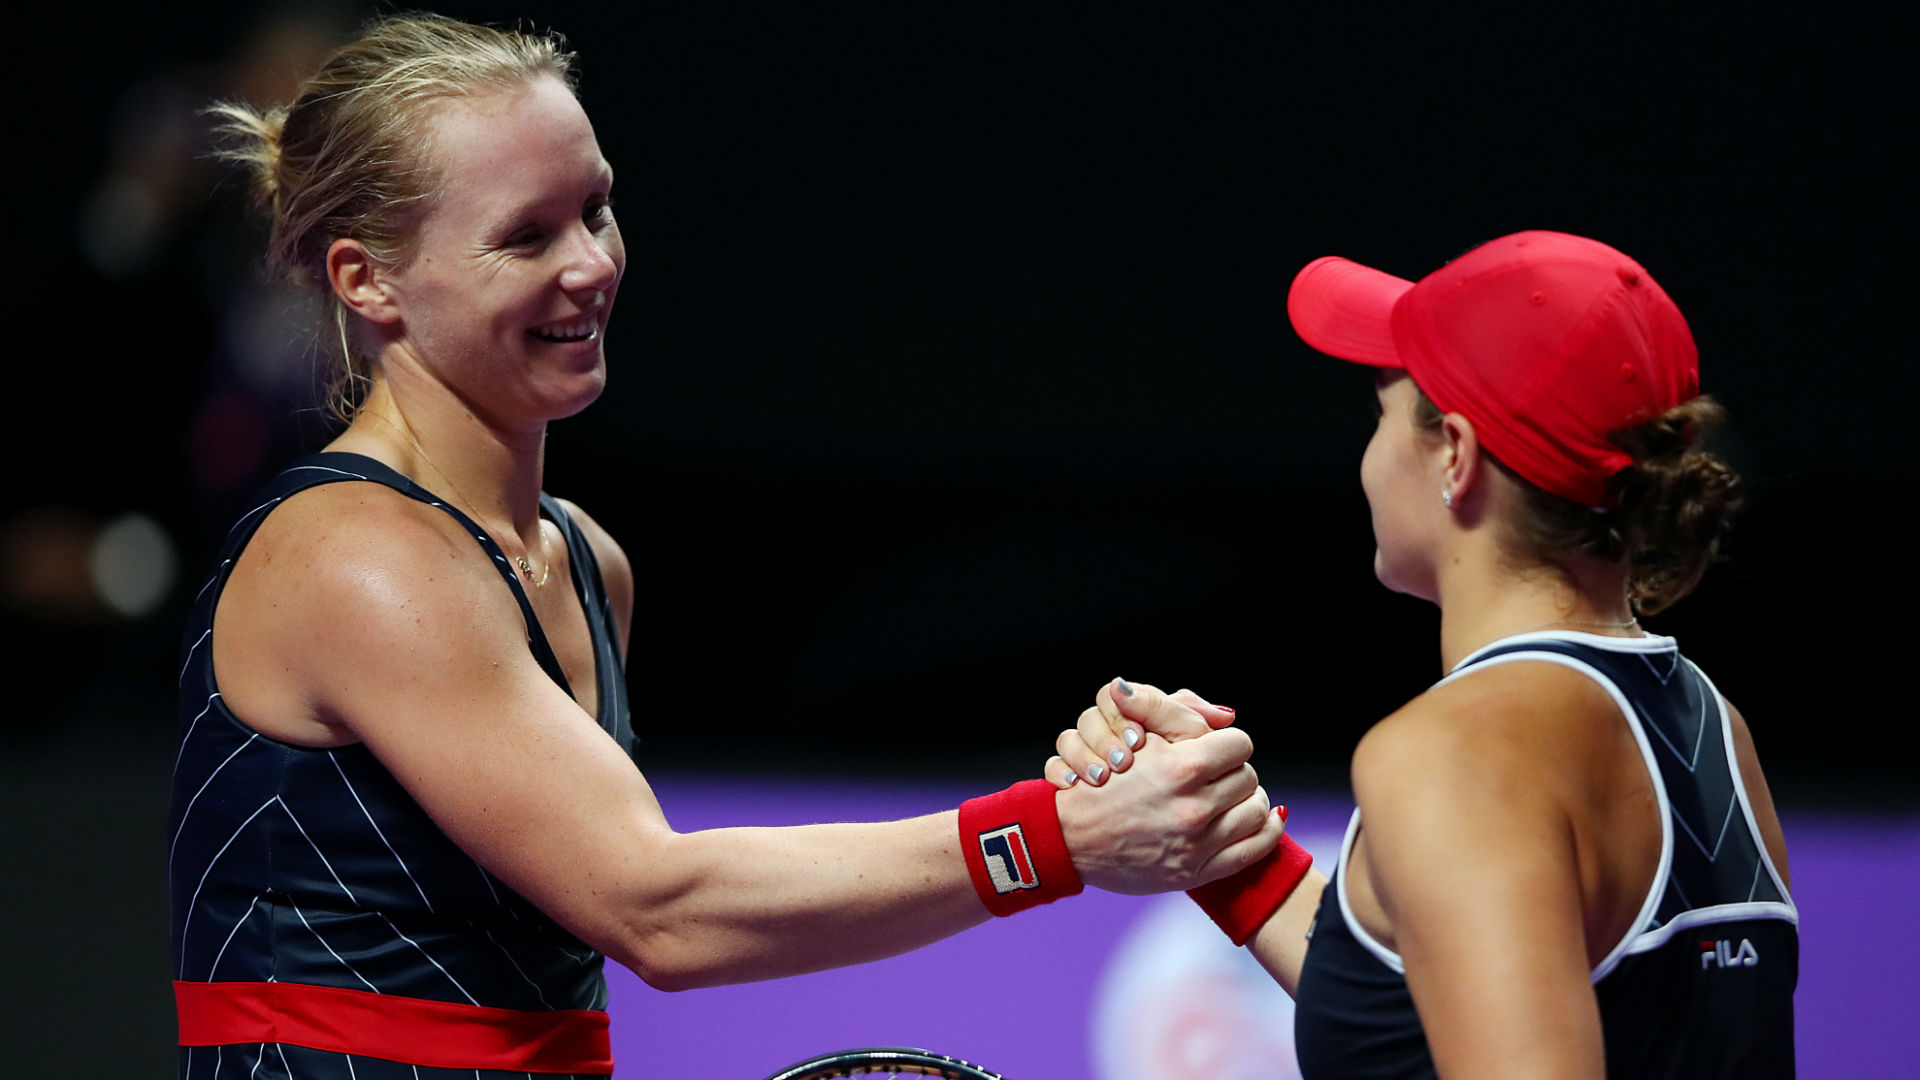 Number one Barty beaten by last-gasp Osaka replacement Bertens at WTA Finals